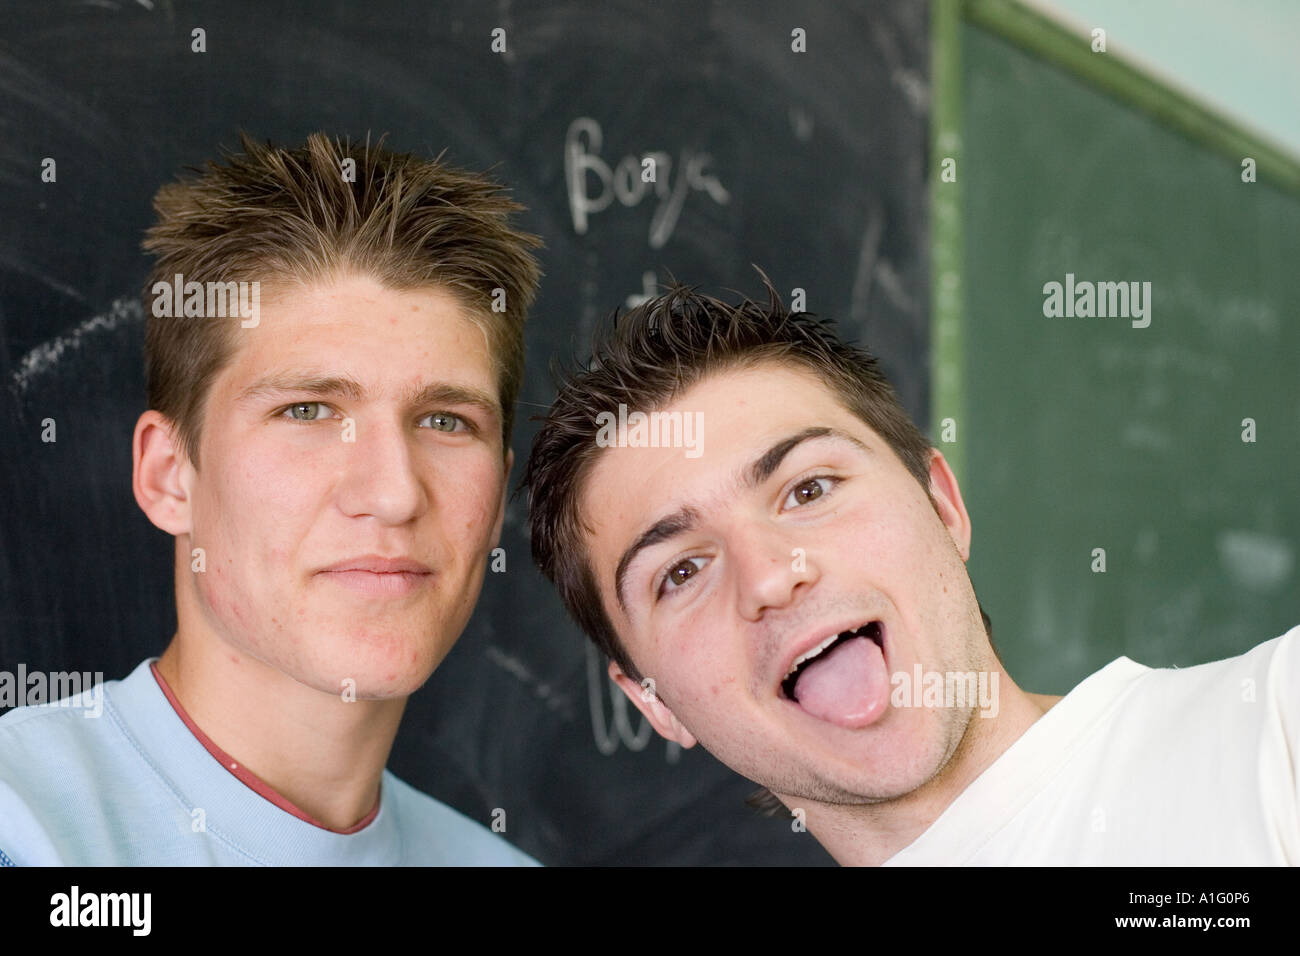 Teenager students in their classroom - Stock Image